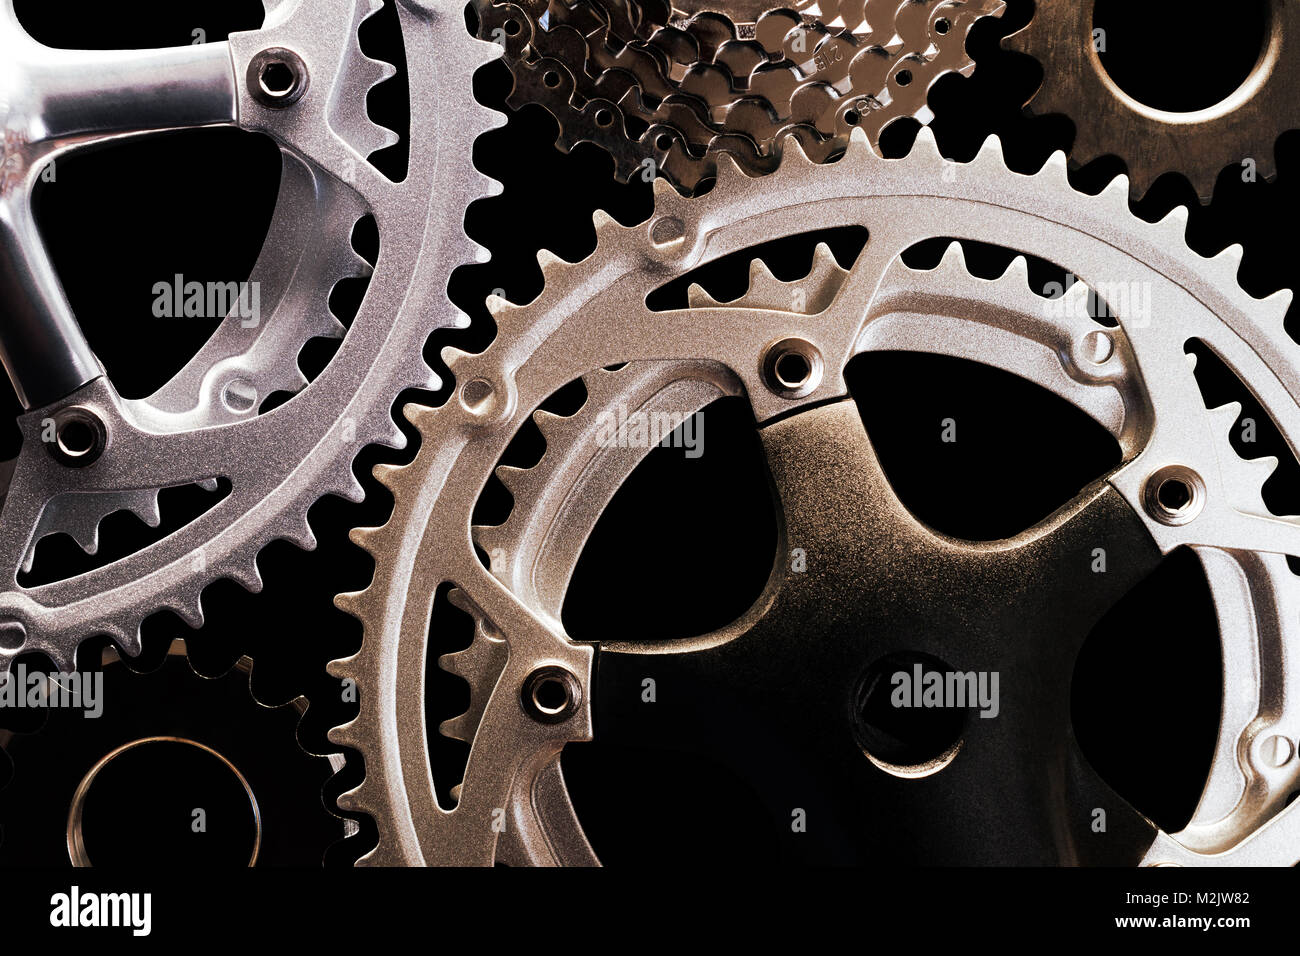 Close-up of various types of bicycle gears on black background - Stock Image